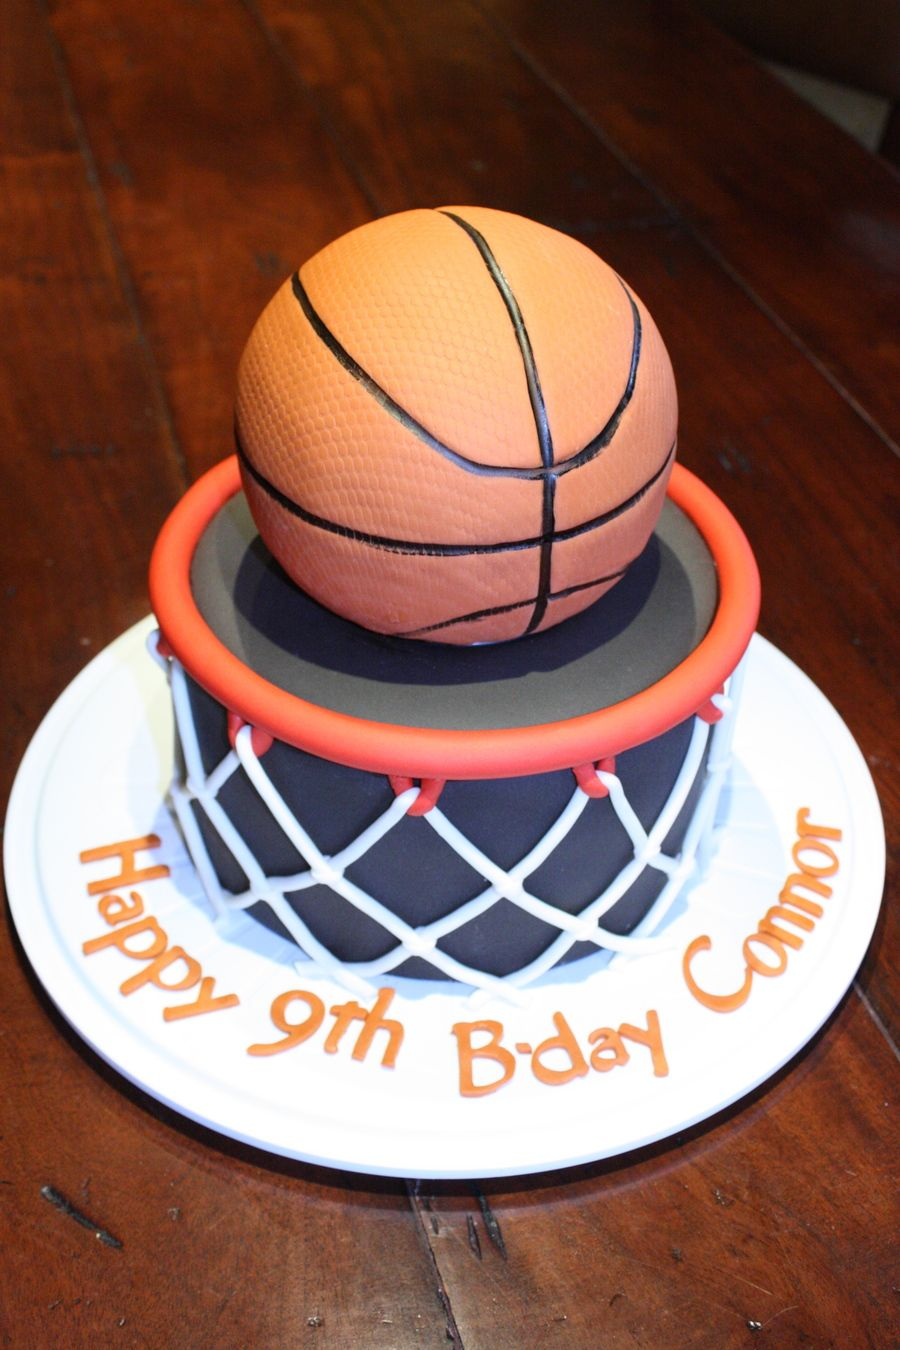 Birthday Cake For Basketball ~ Basketball birthday cake is rice krispie treat ideas and party stuff